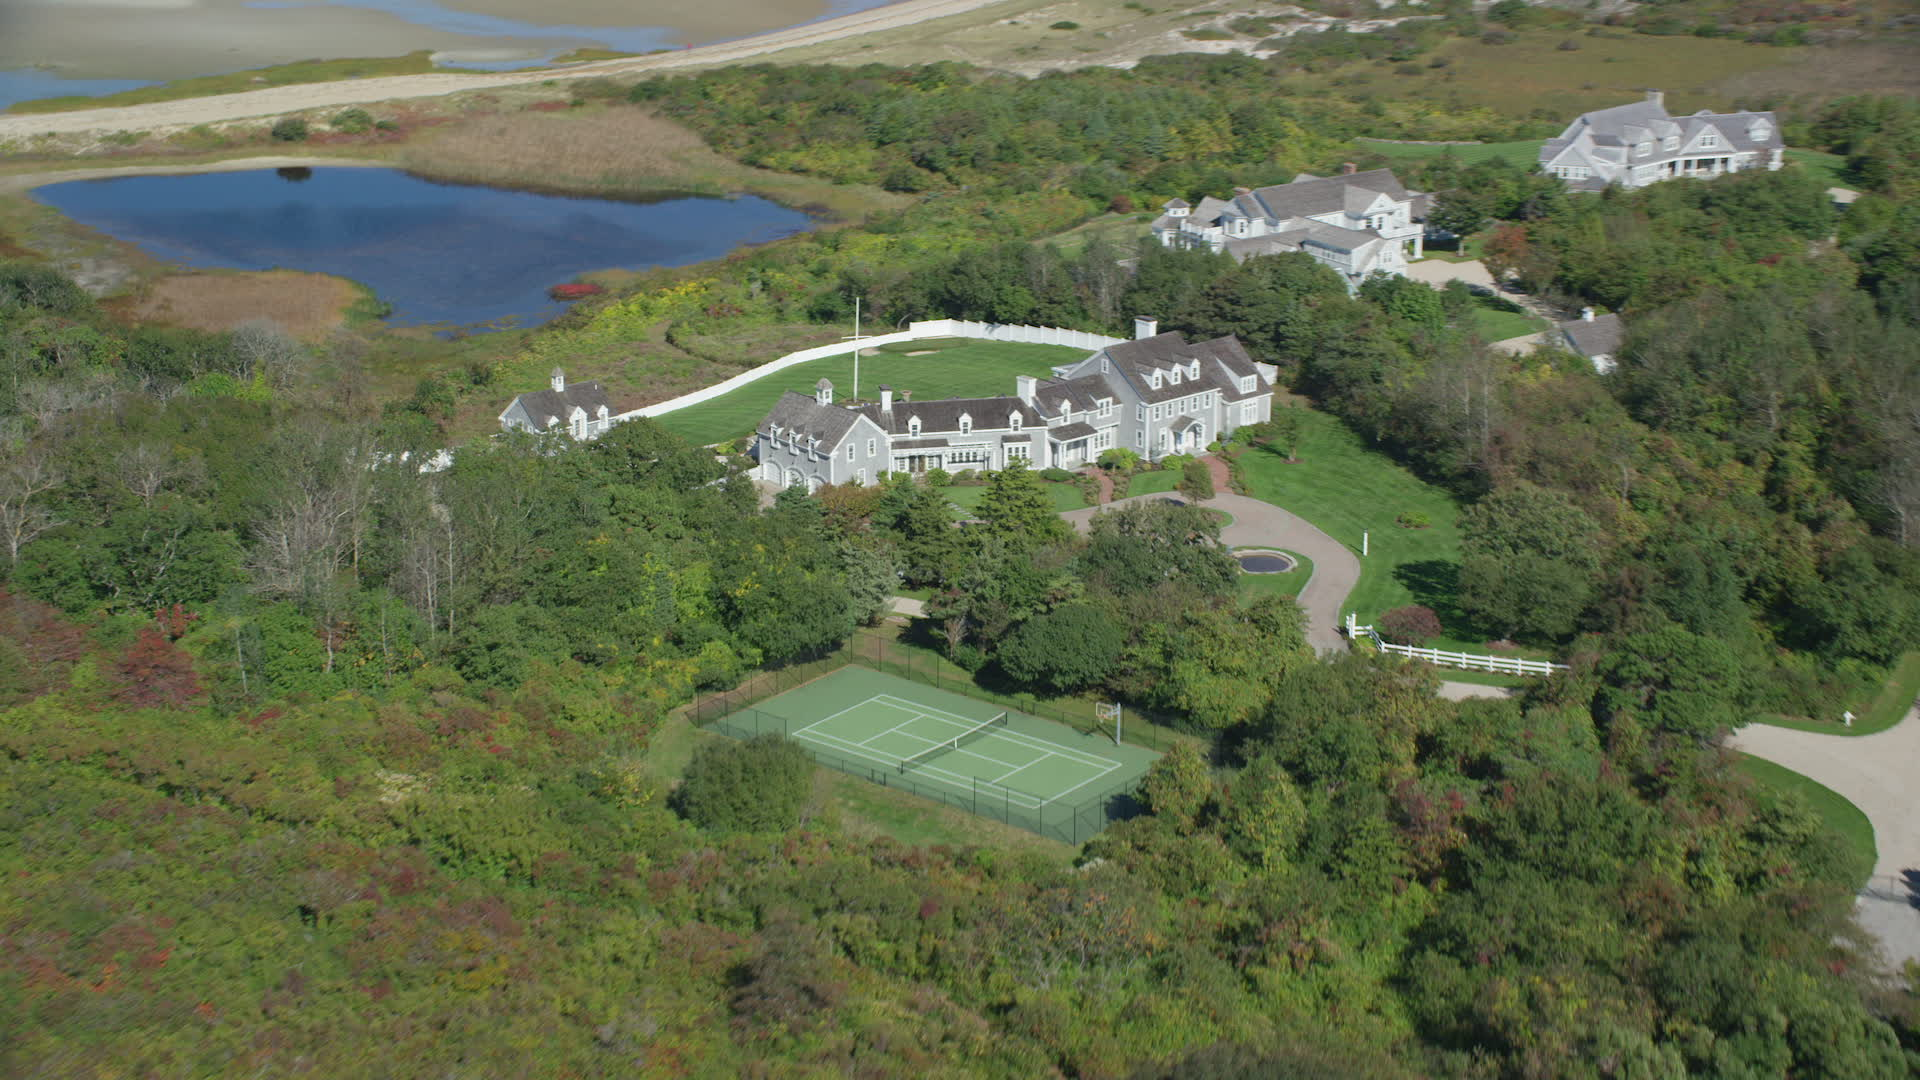 6K stock footage aerial video flying by mansion, tennis court, swimming  pool, Dennis, Massachusetts Aerial Stock Footage AX143_165 | Axiom Images